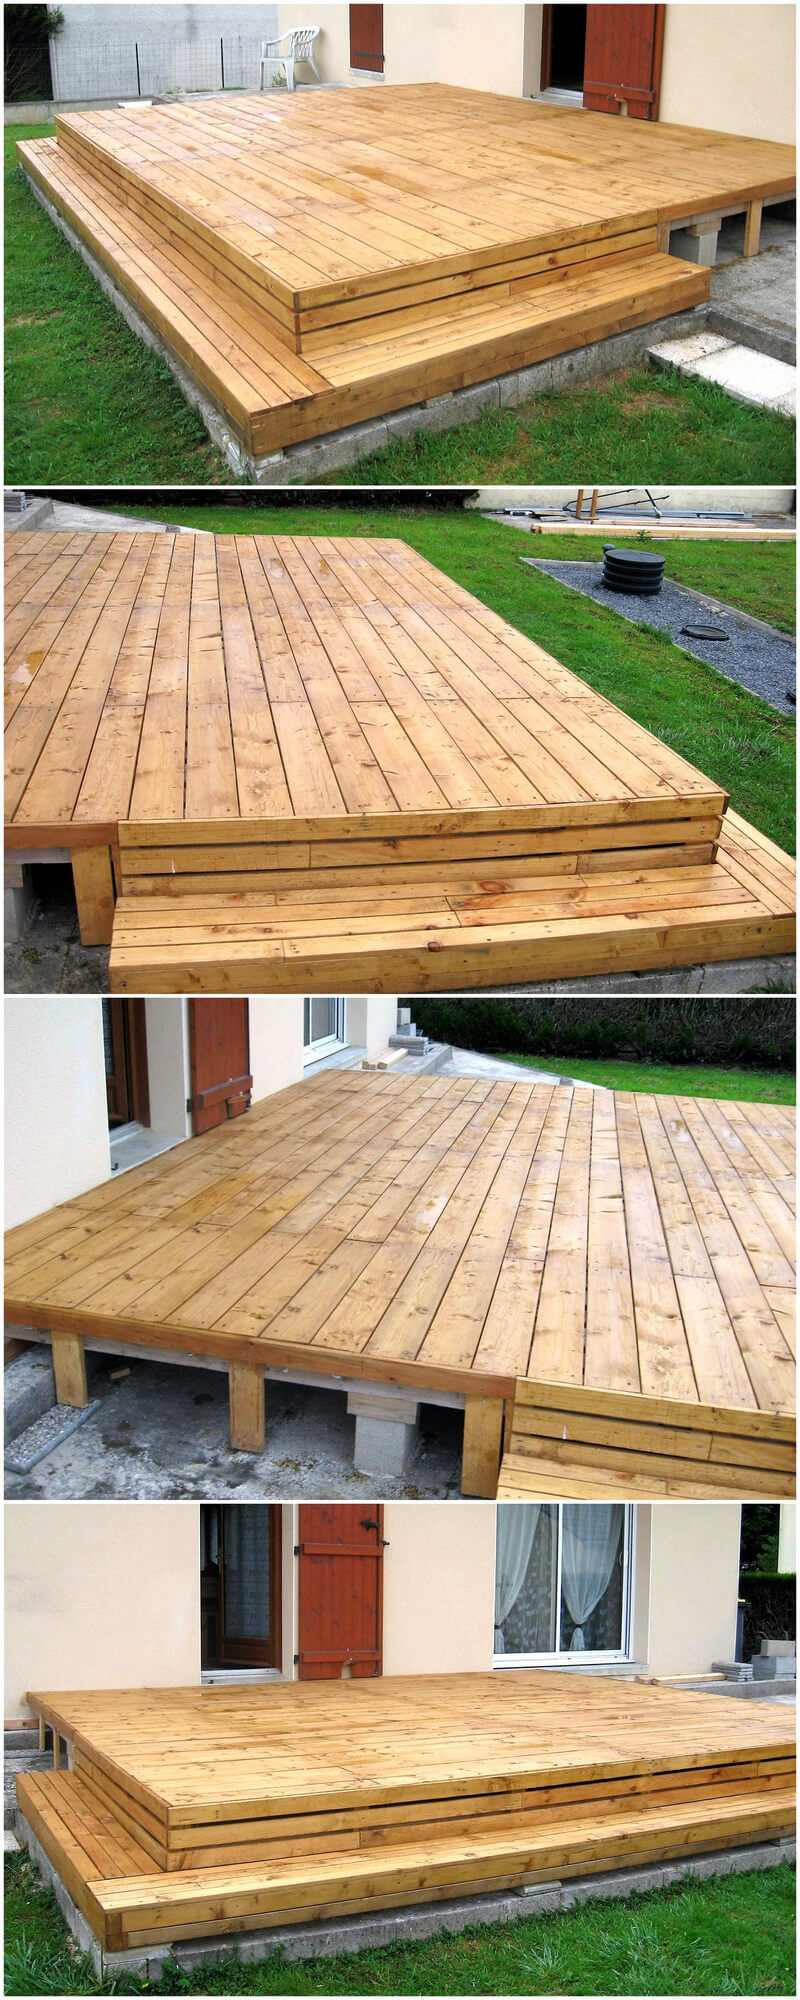 repurposed pallets wood outdoor terrace